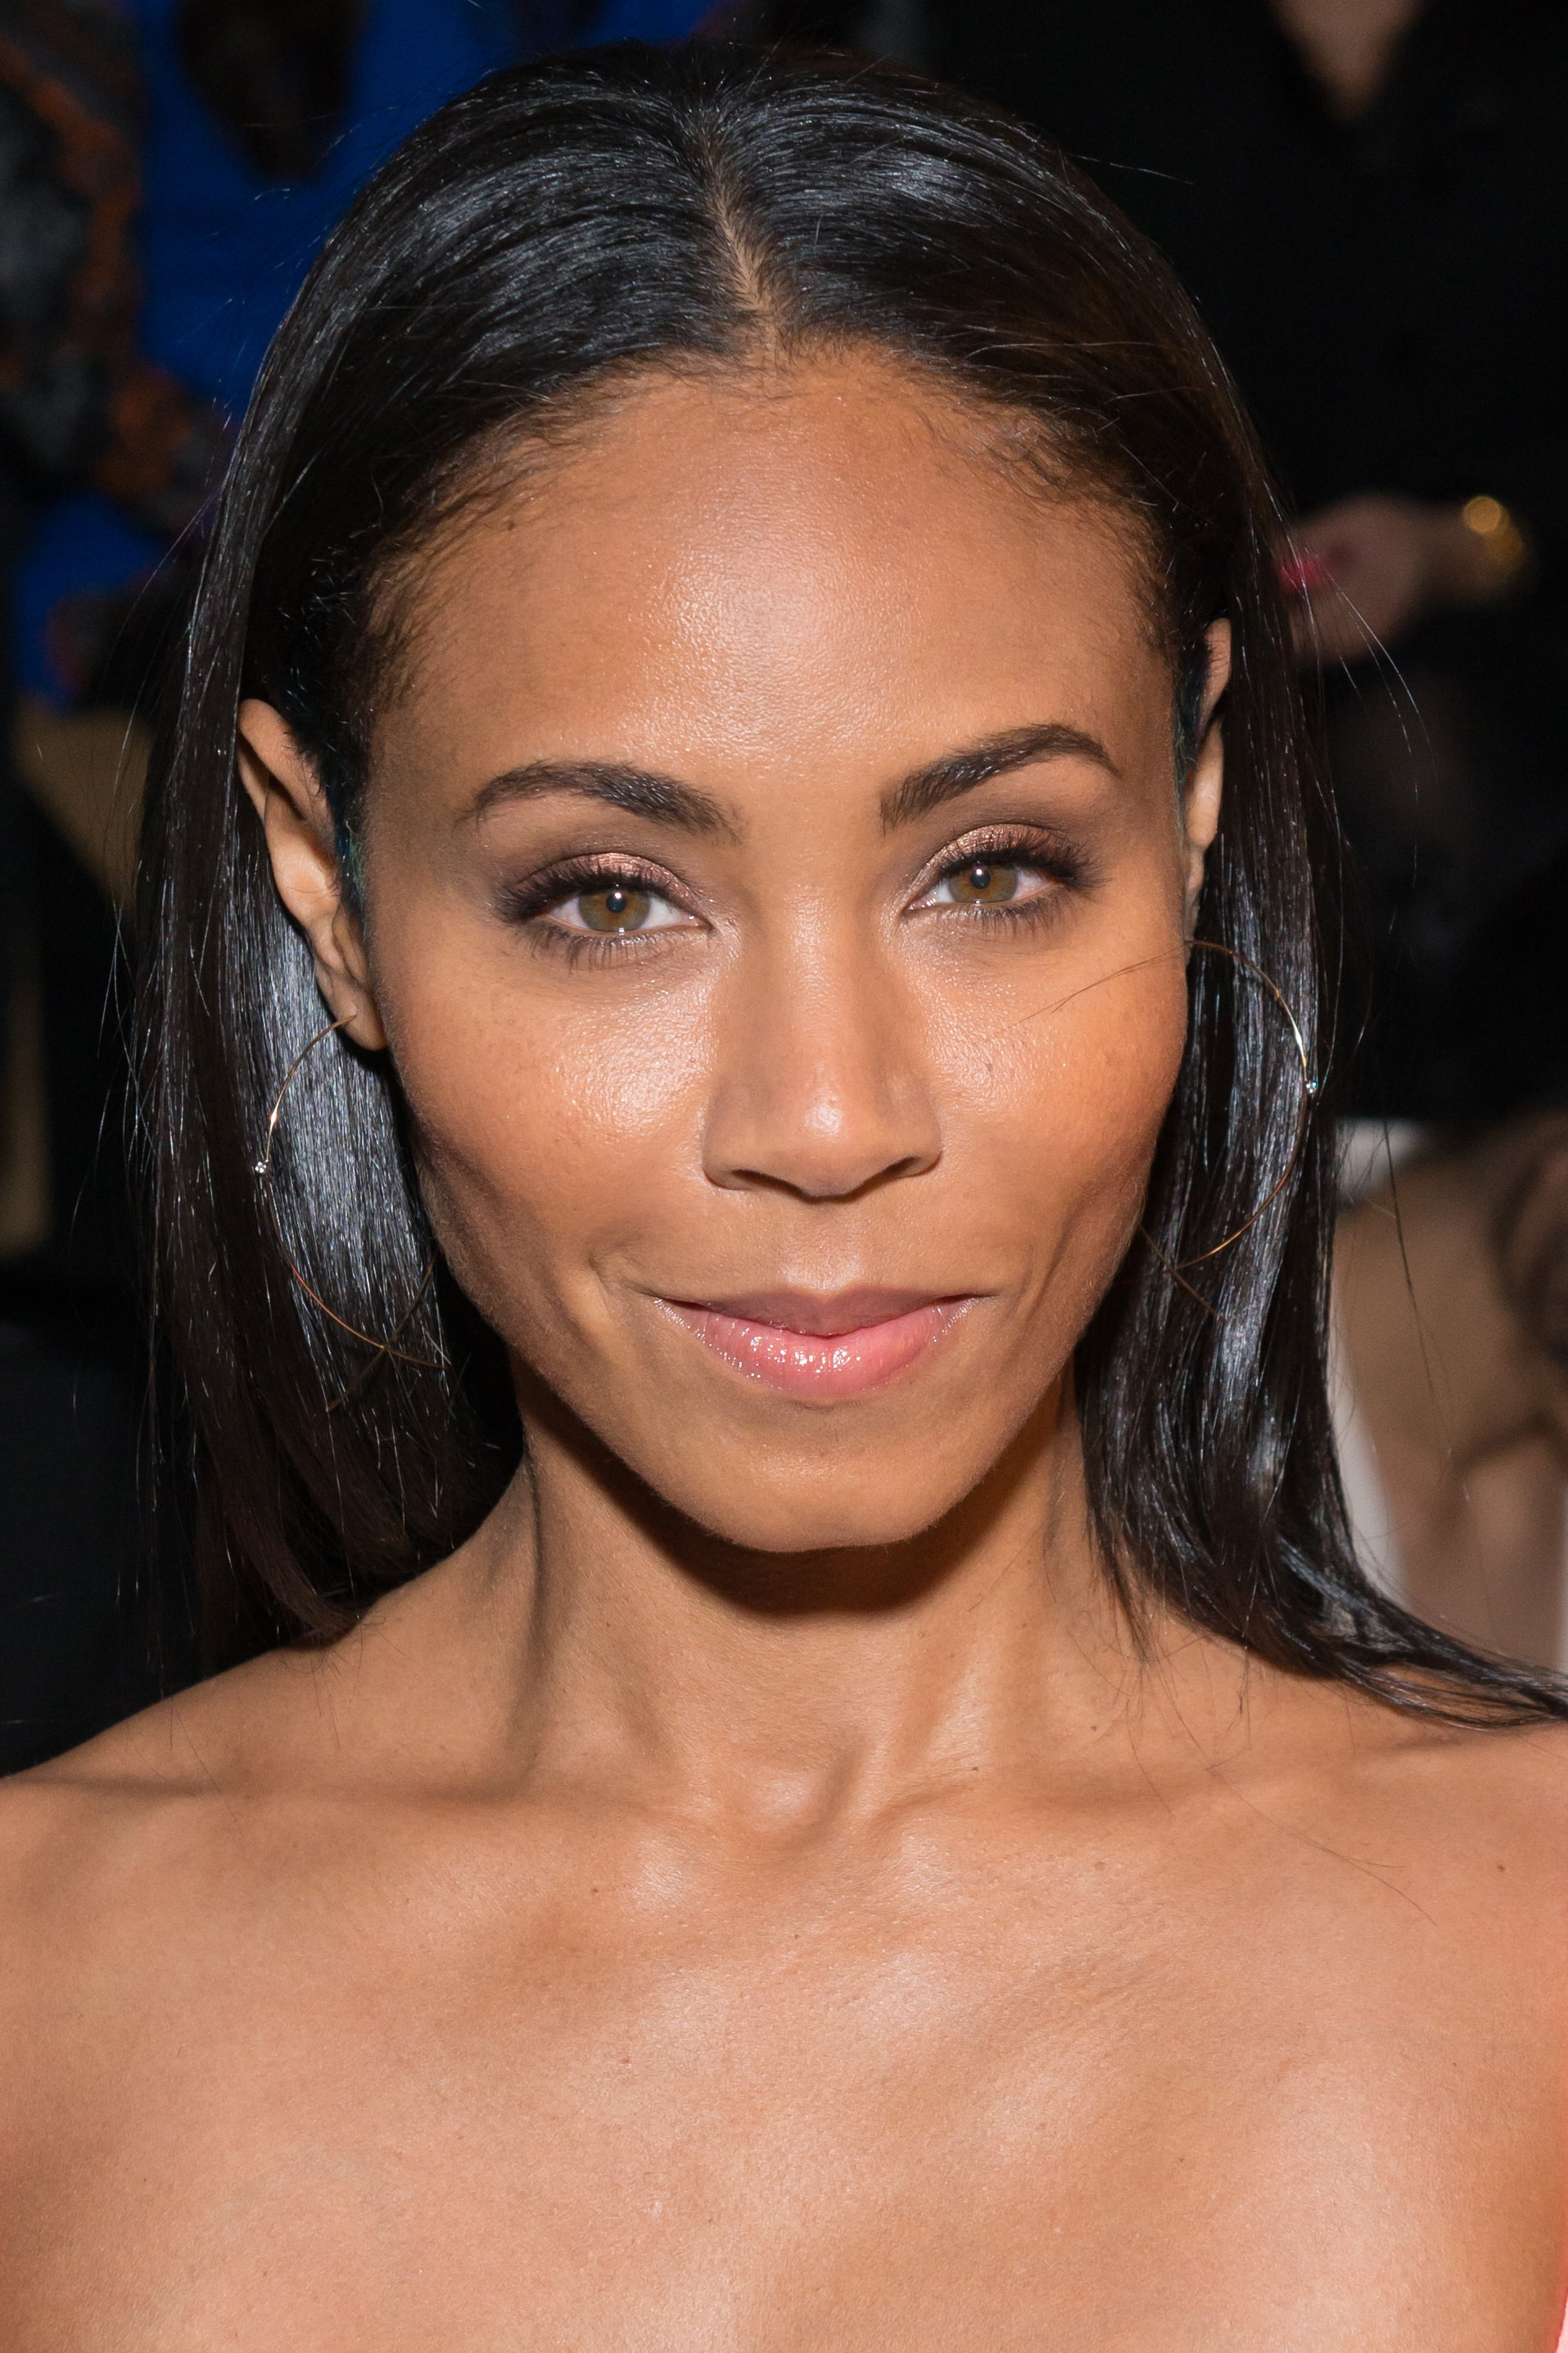 Jada Pinkett Smith HQ wallpapers